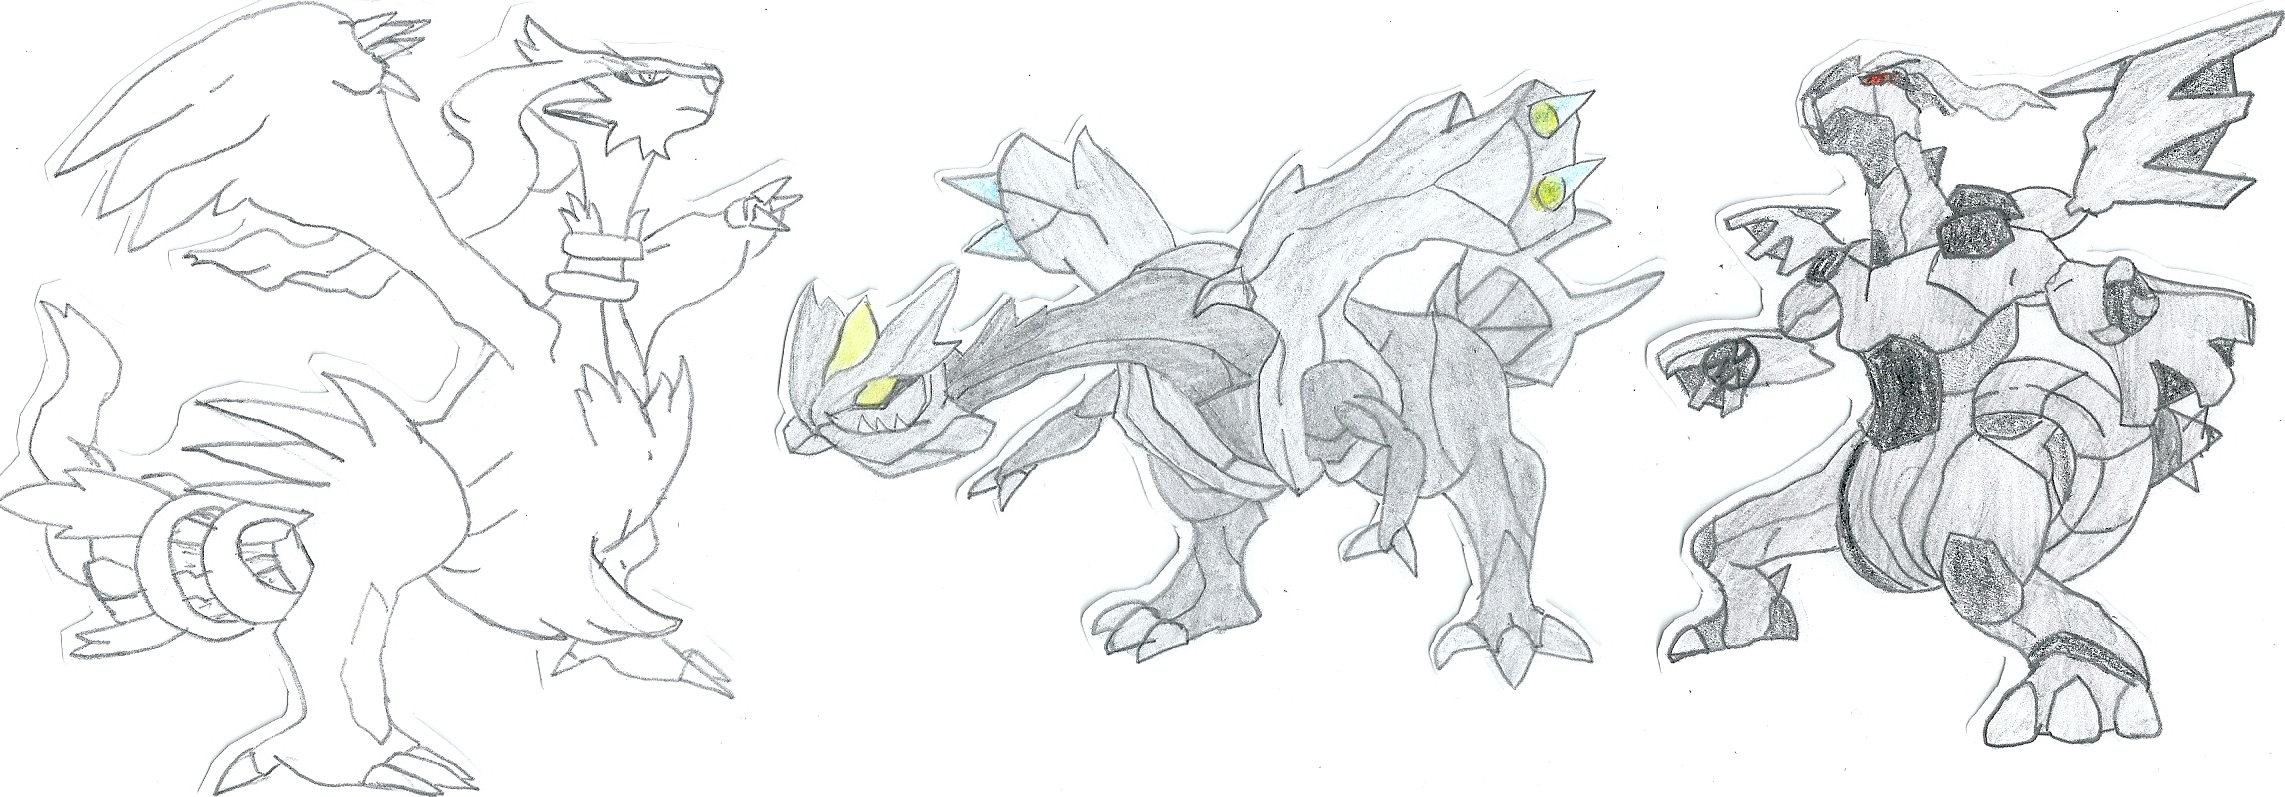 Kyurem Reshiram And Zekrom